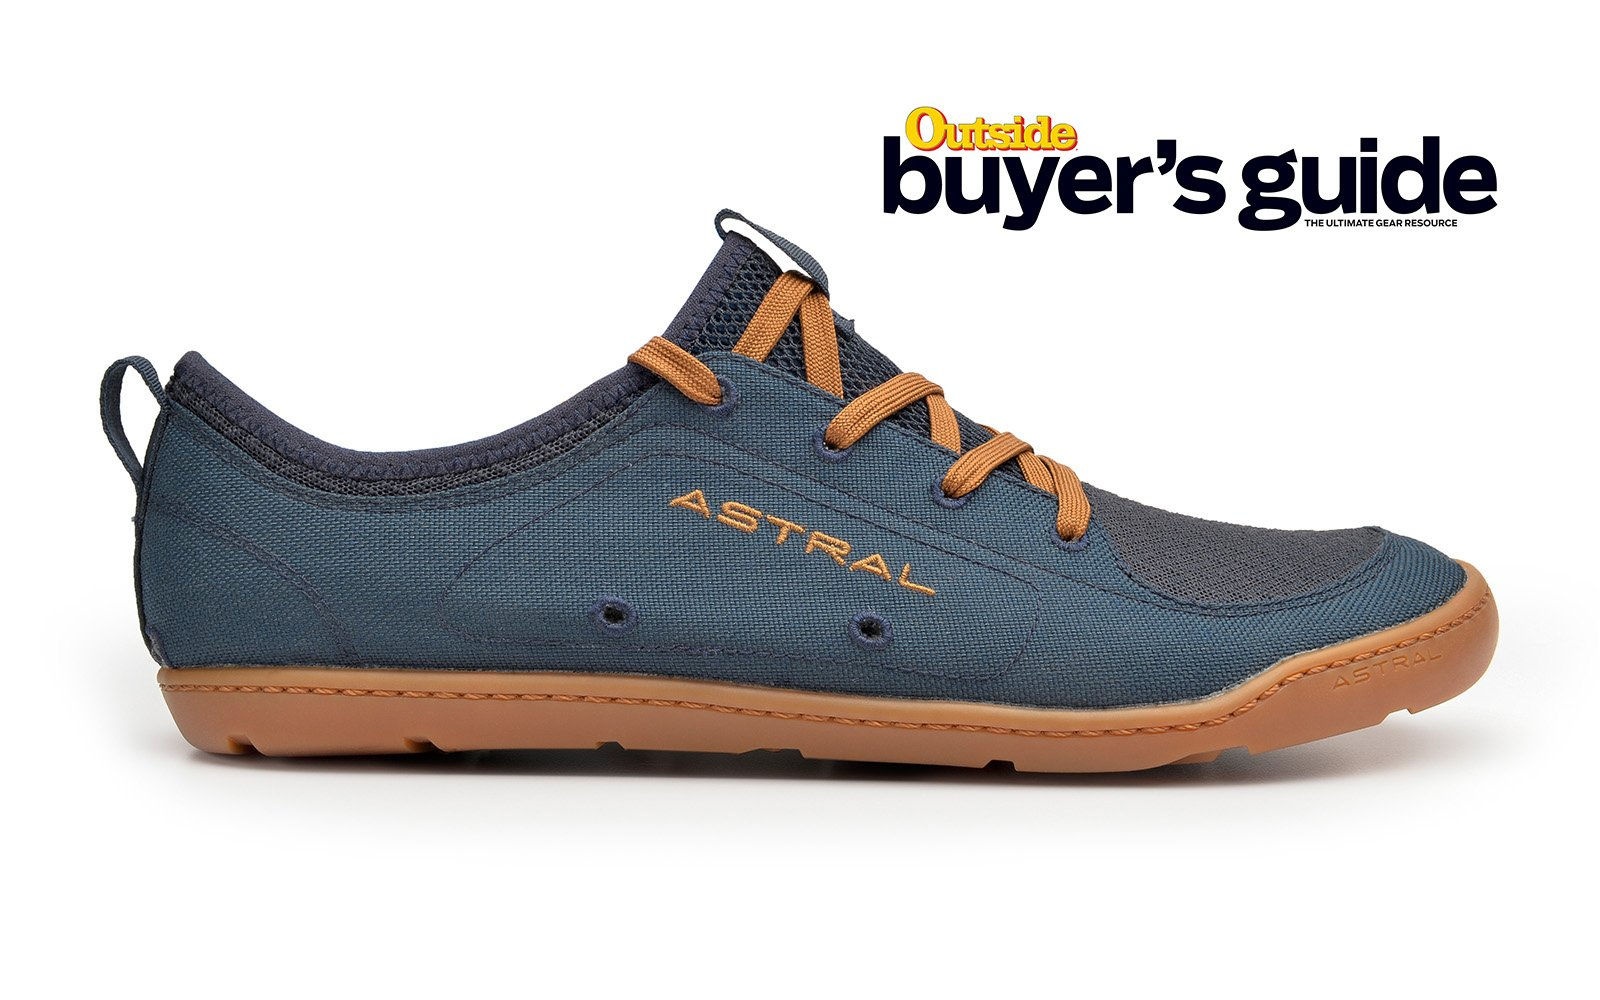 Astral Loyak Men's Water Shoes in Navy/Brown